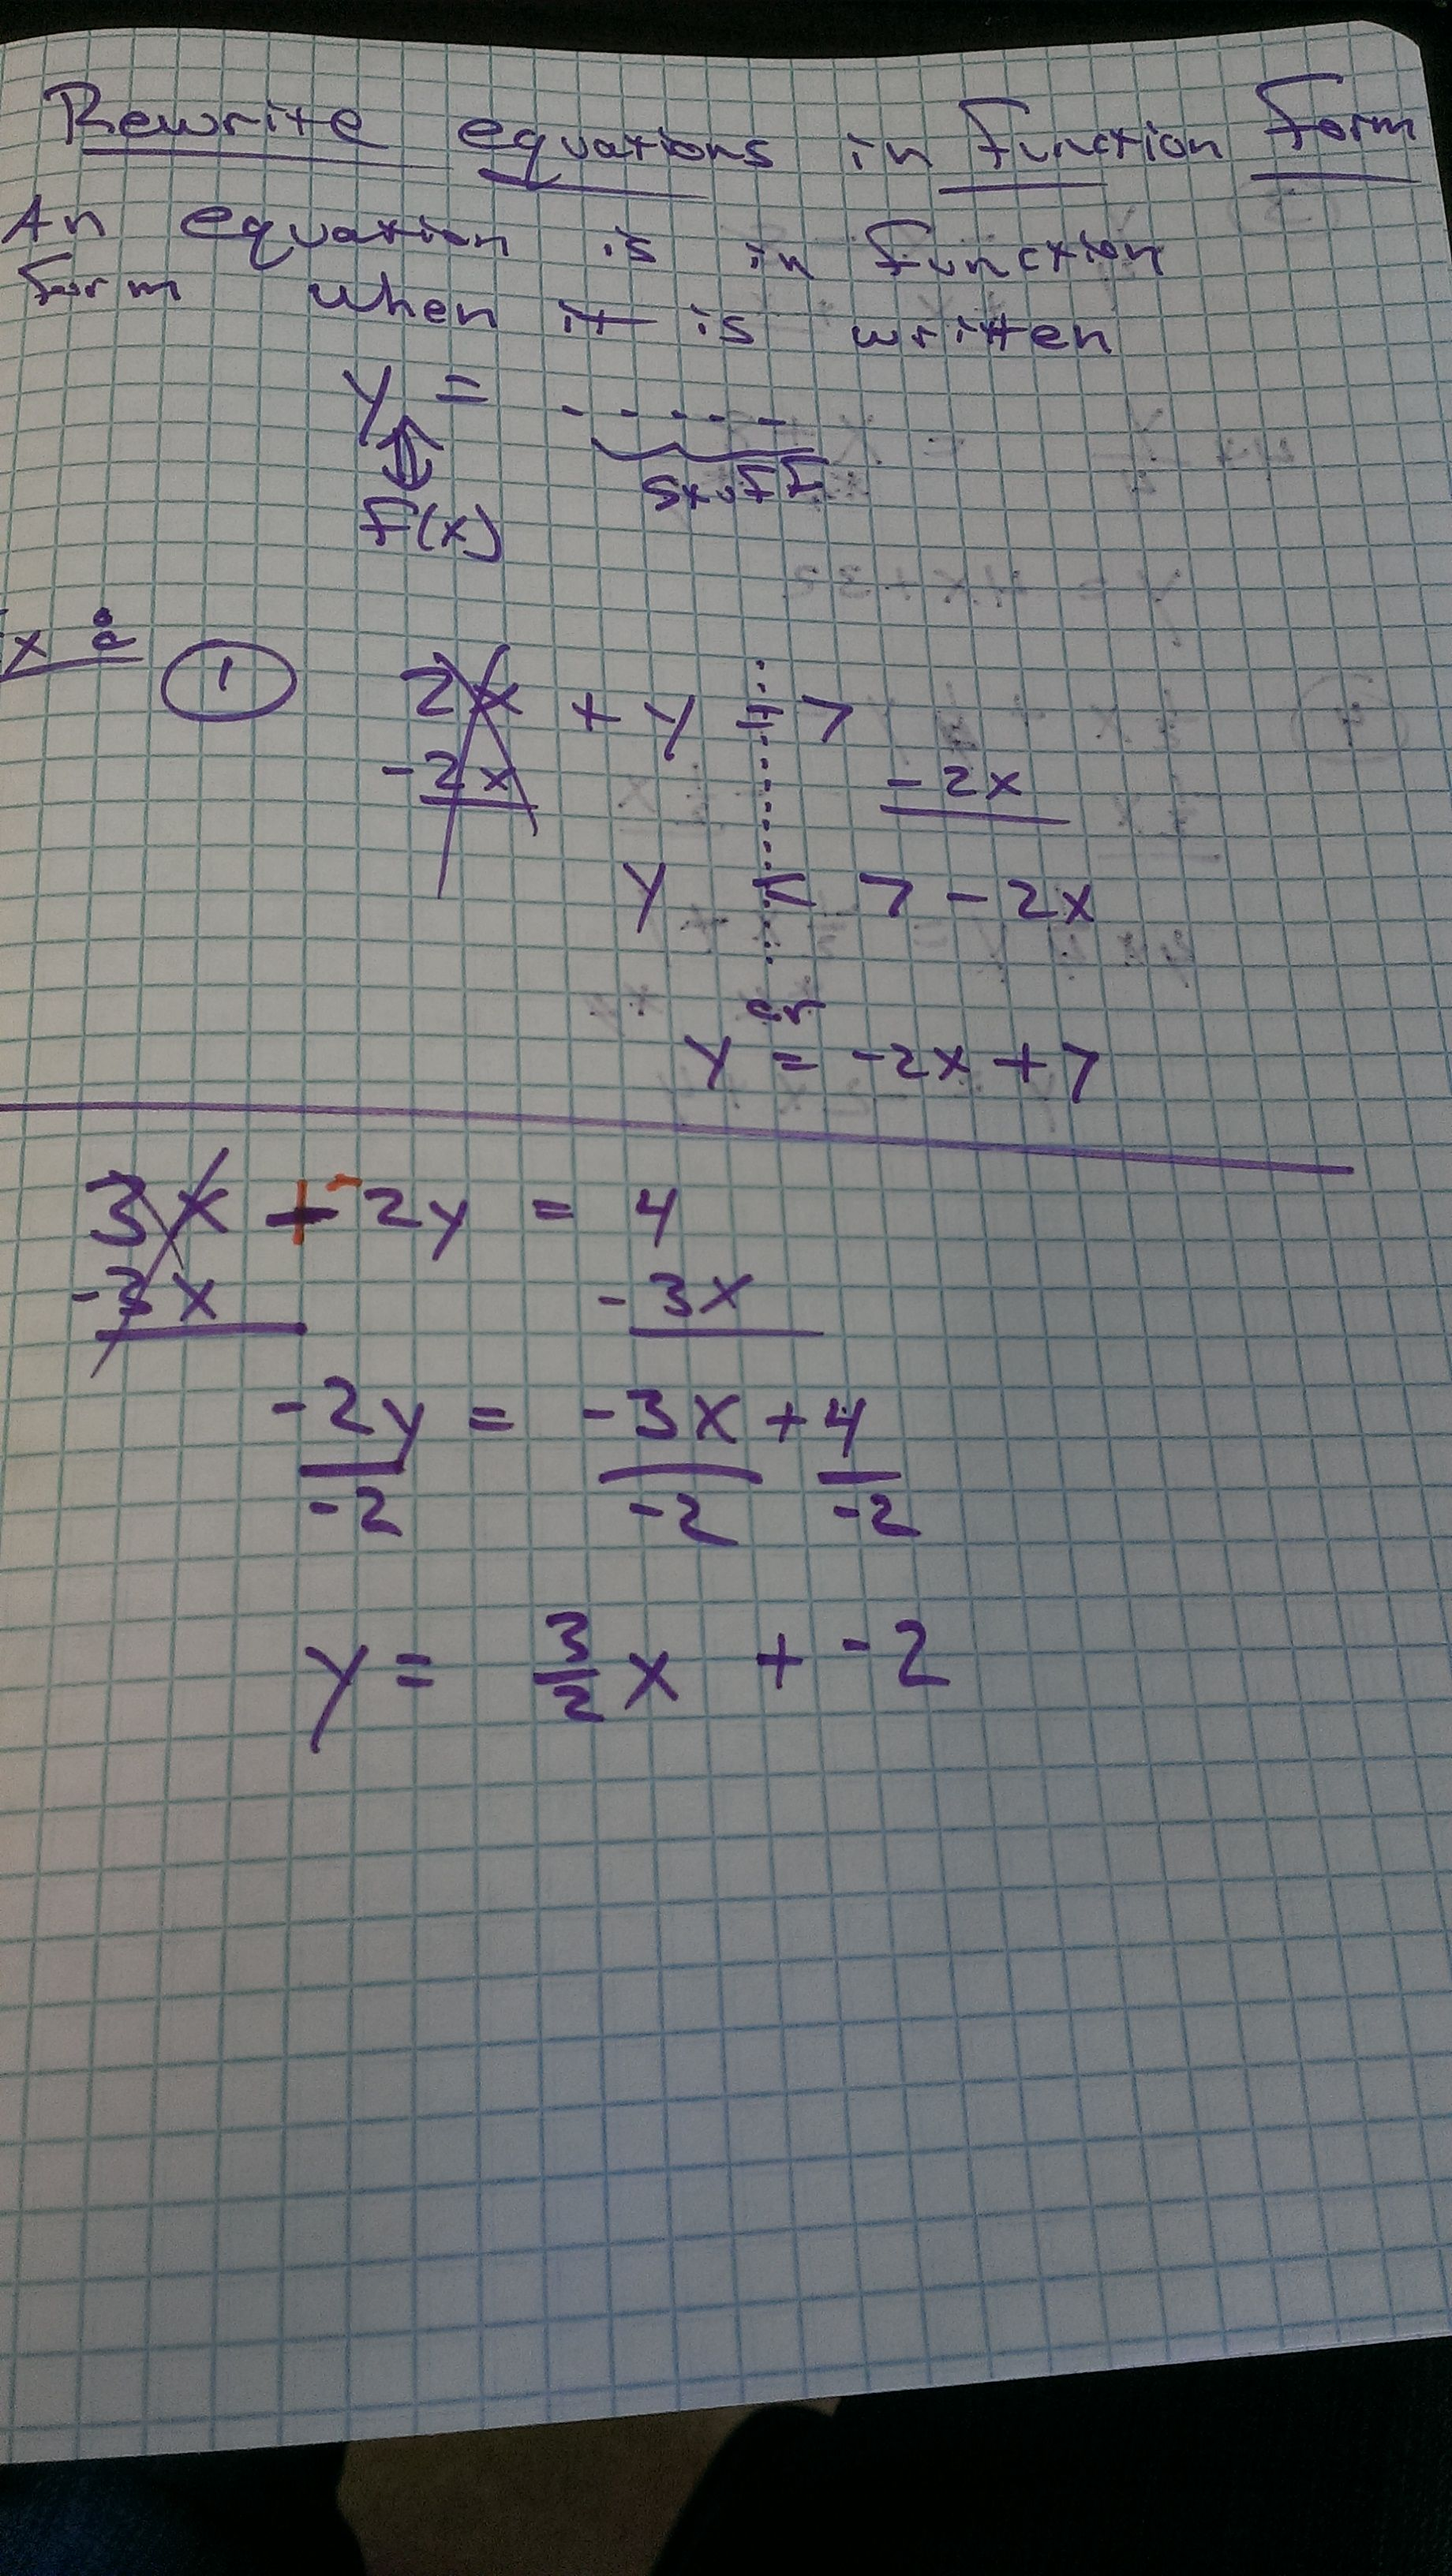 Rewrite Equations In Function Form